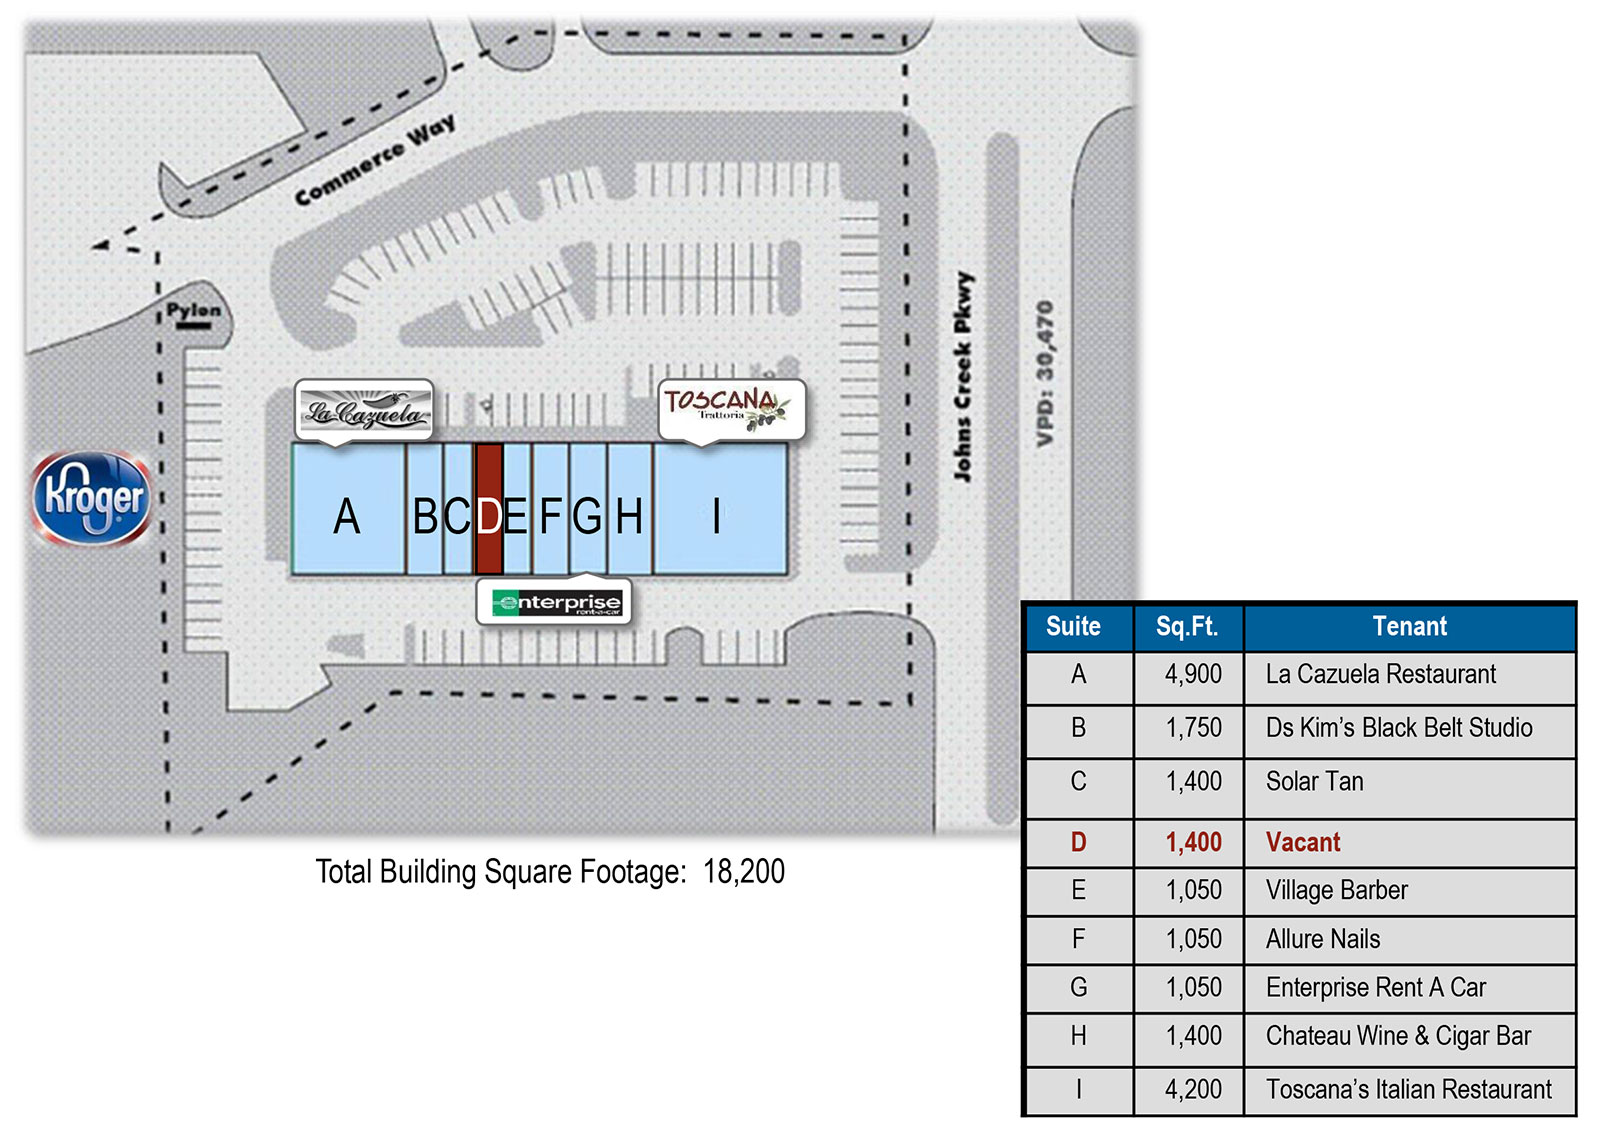 Shops at Johns Creek Site plan - Shops at Johns Creek